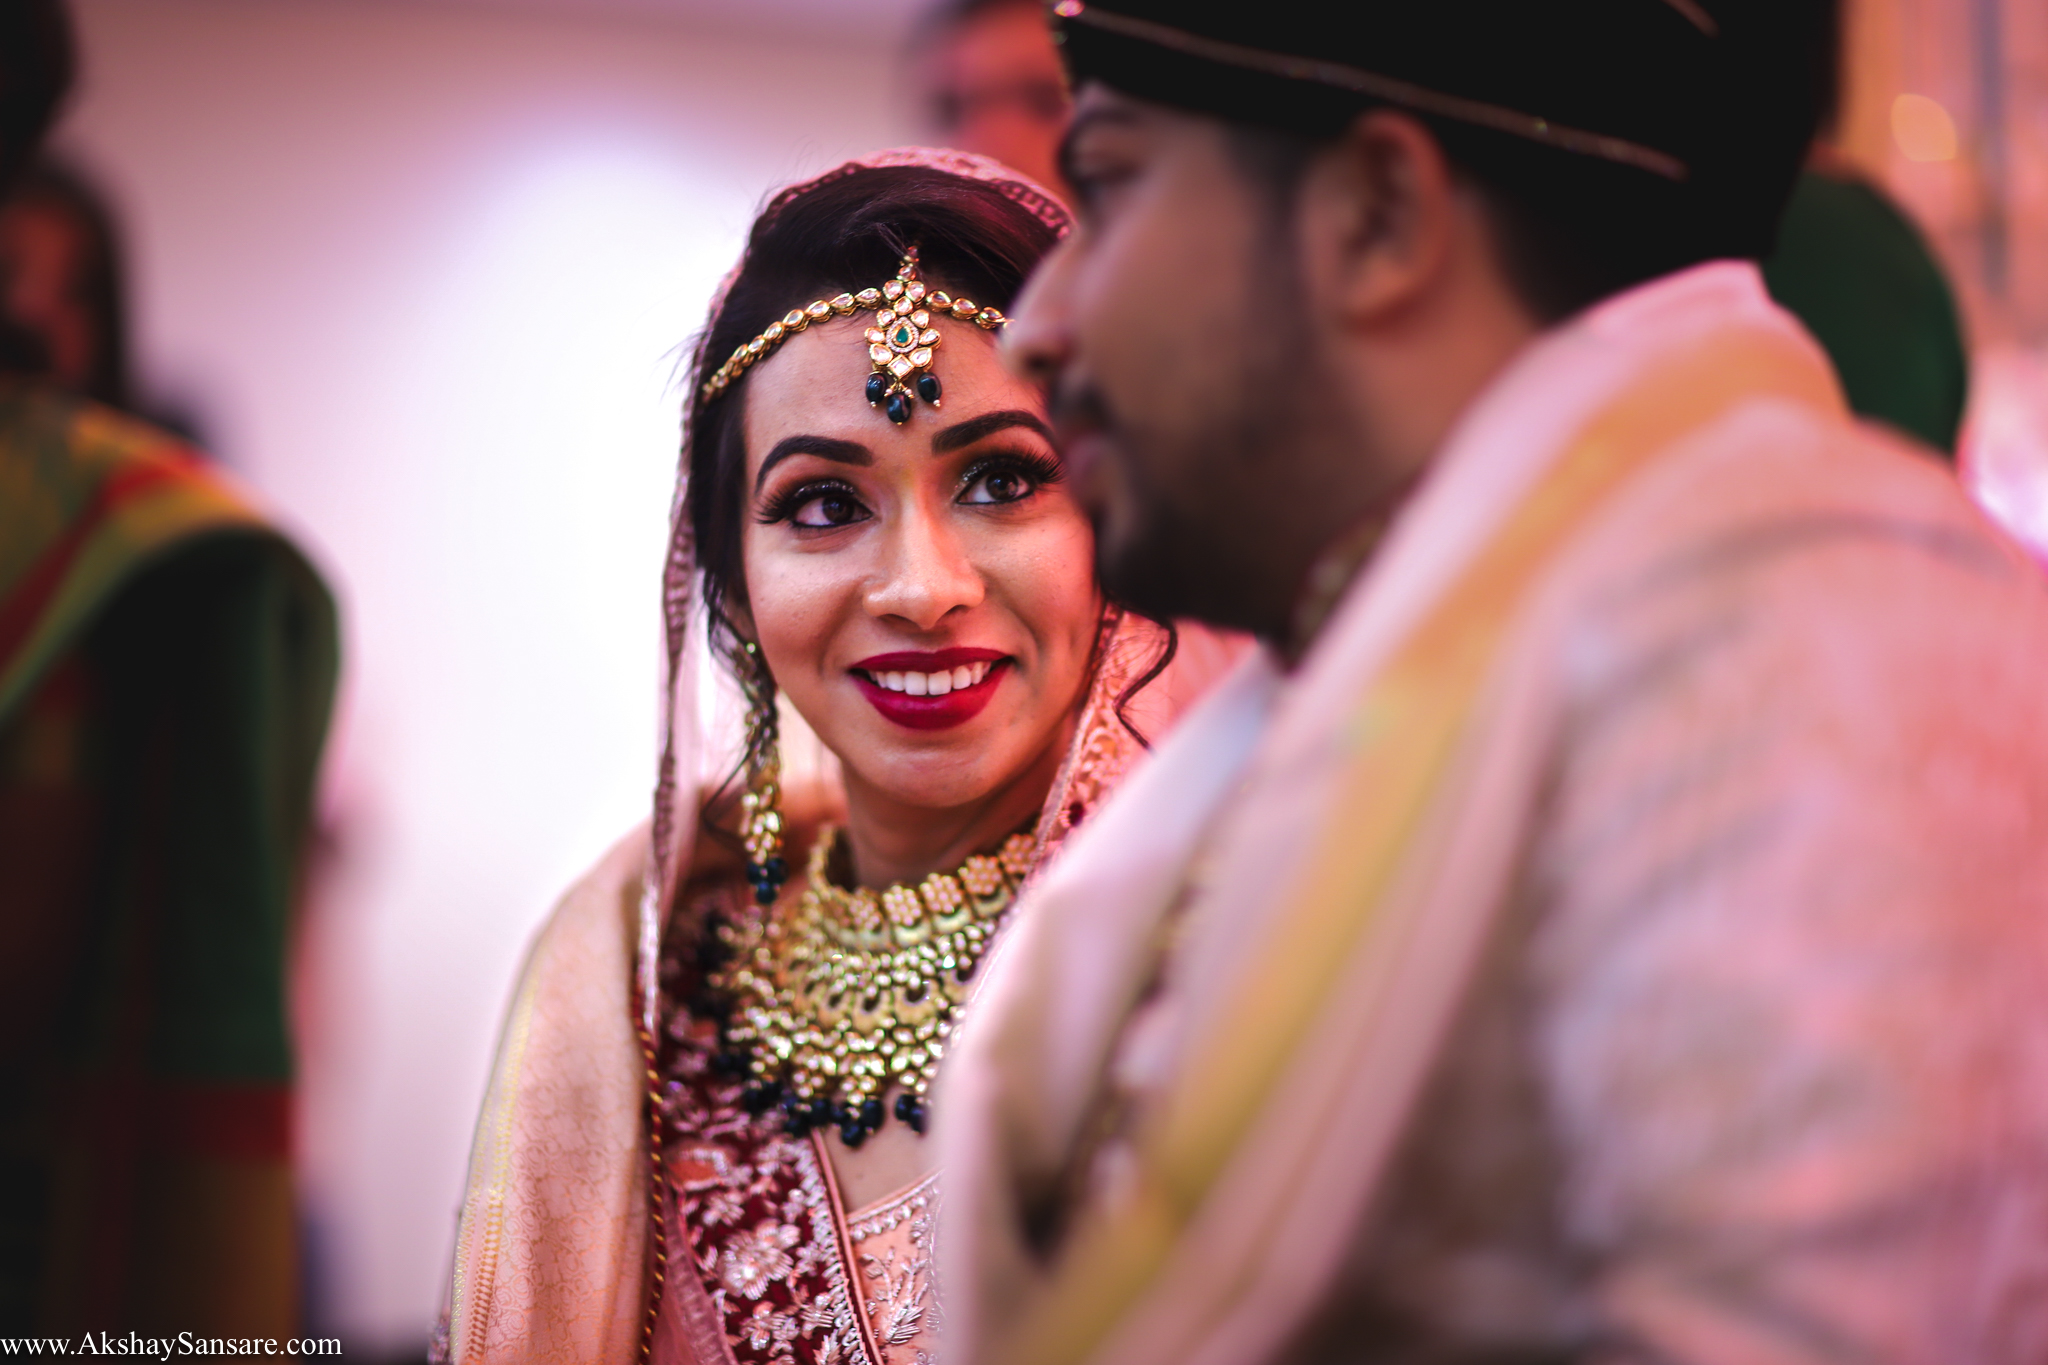 Nupur & Rohan wedding Akshay Sansare Photography best wedding photographer in mumbai India Candid(50).jpg